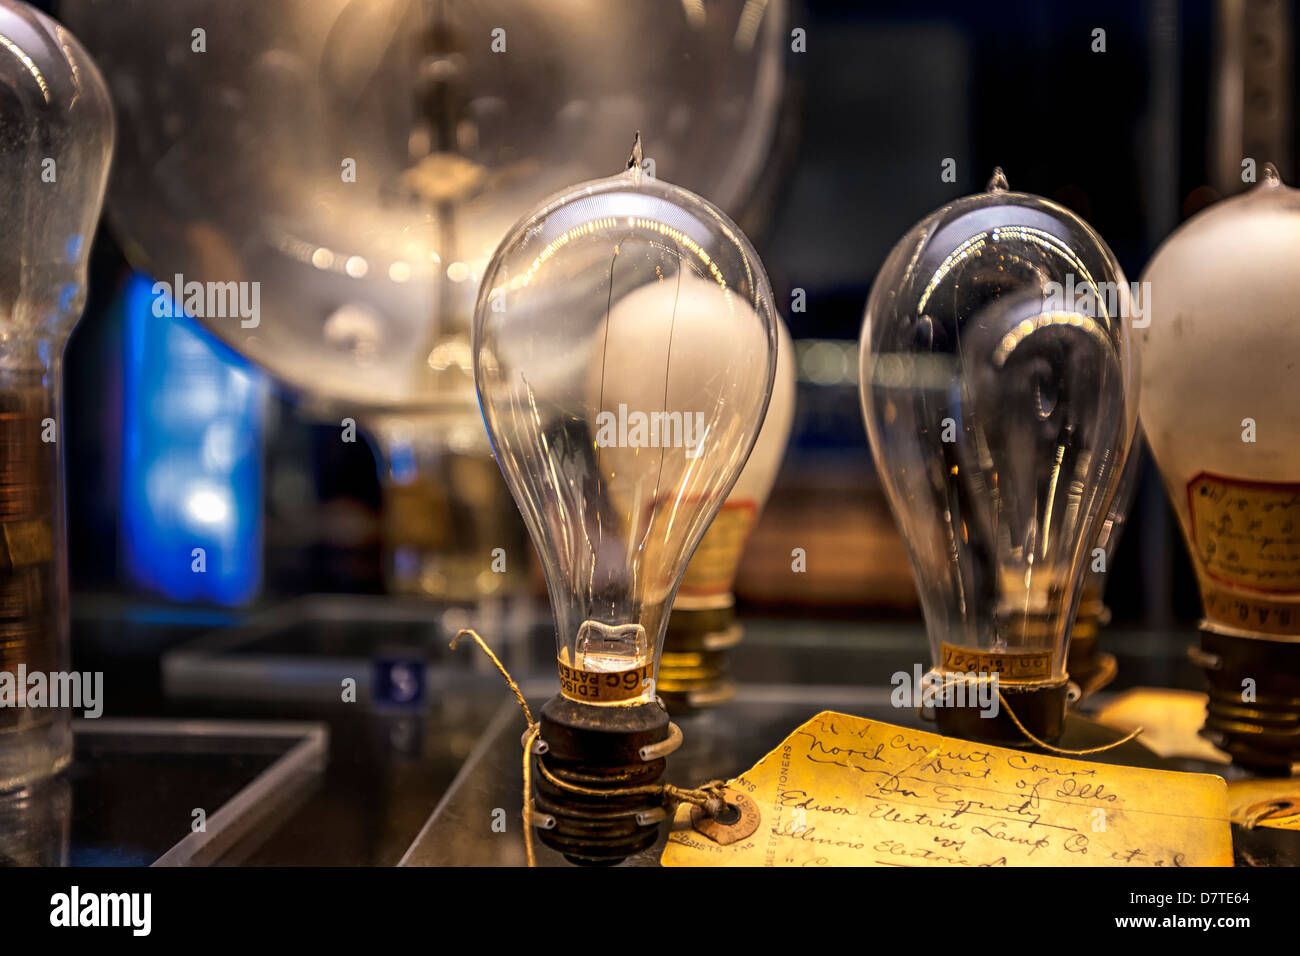 Thomas Edison Light Bulbs With Hand Written Lab Notes On